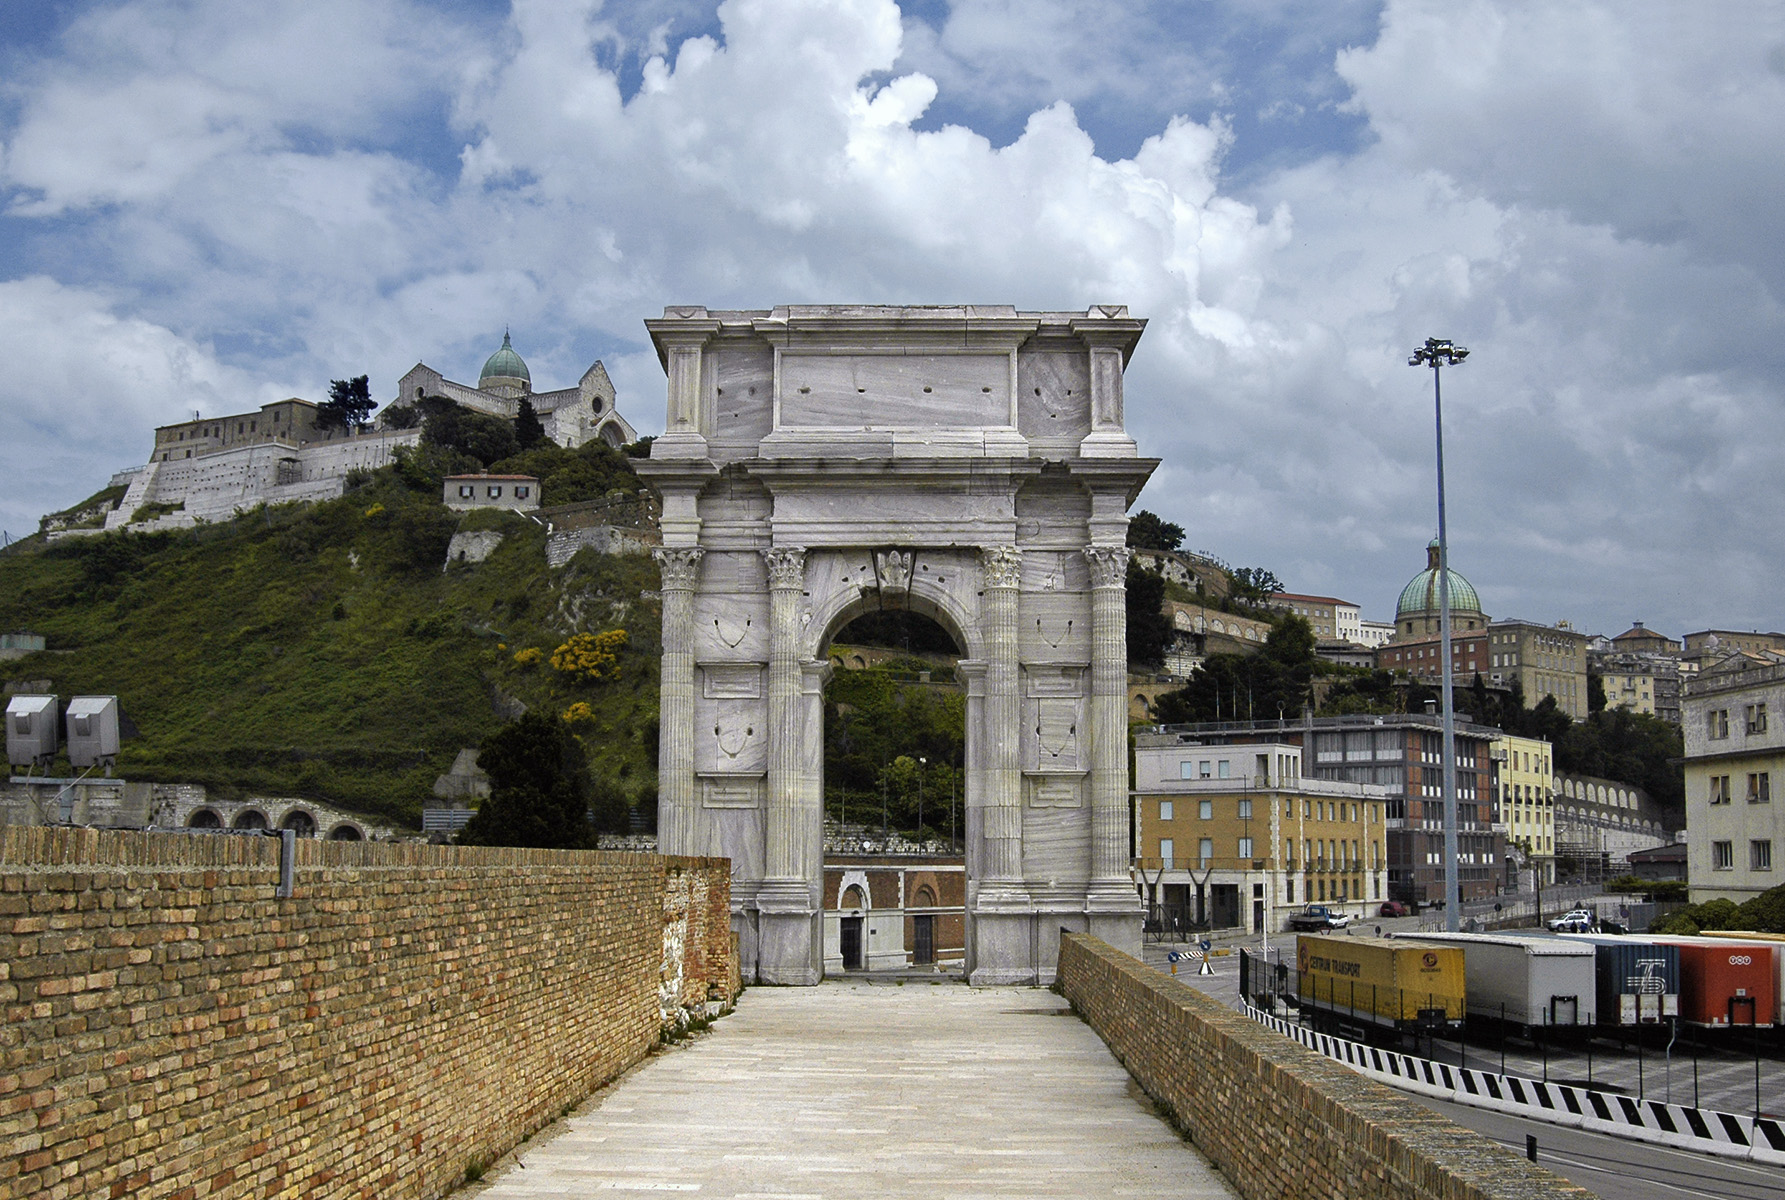 Arch of Trajan. By architect Apollodorus of Damascus. 100—116 CE. Ancona